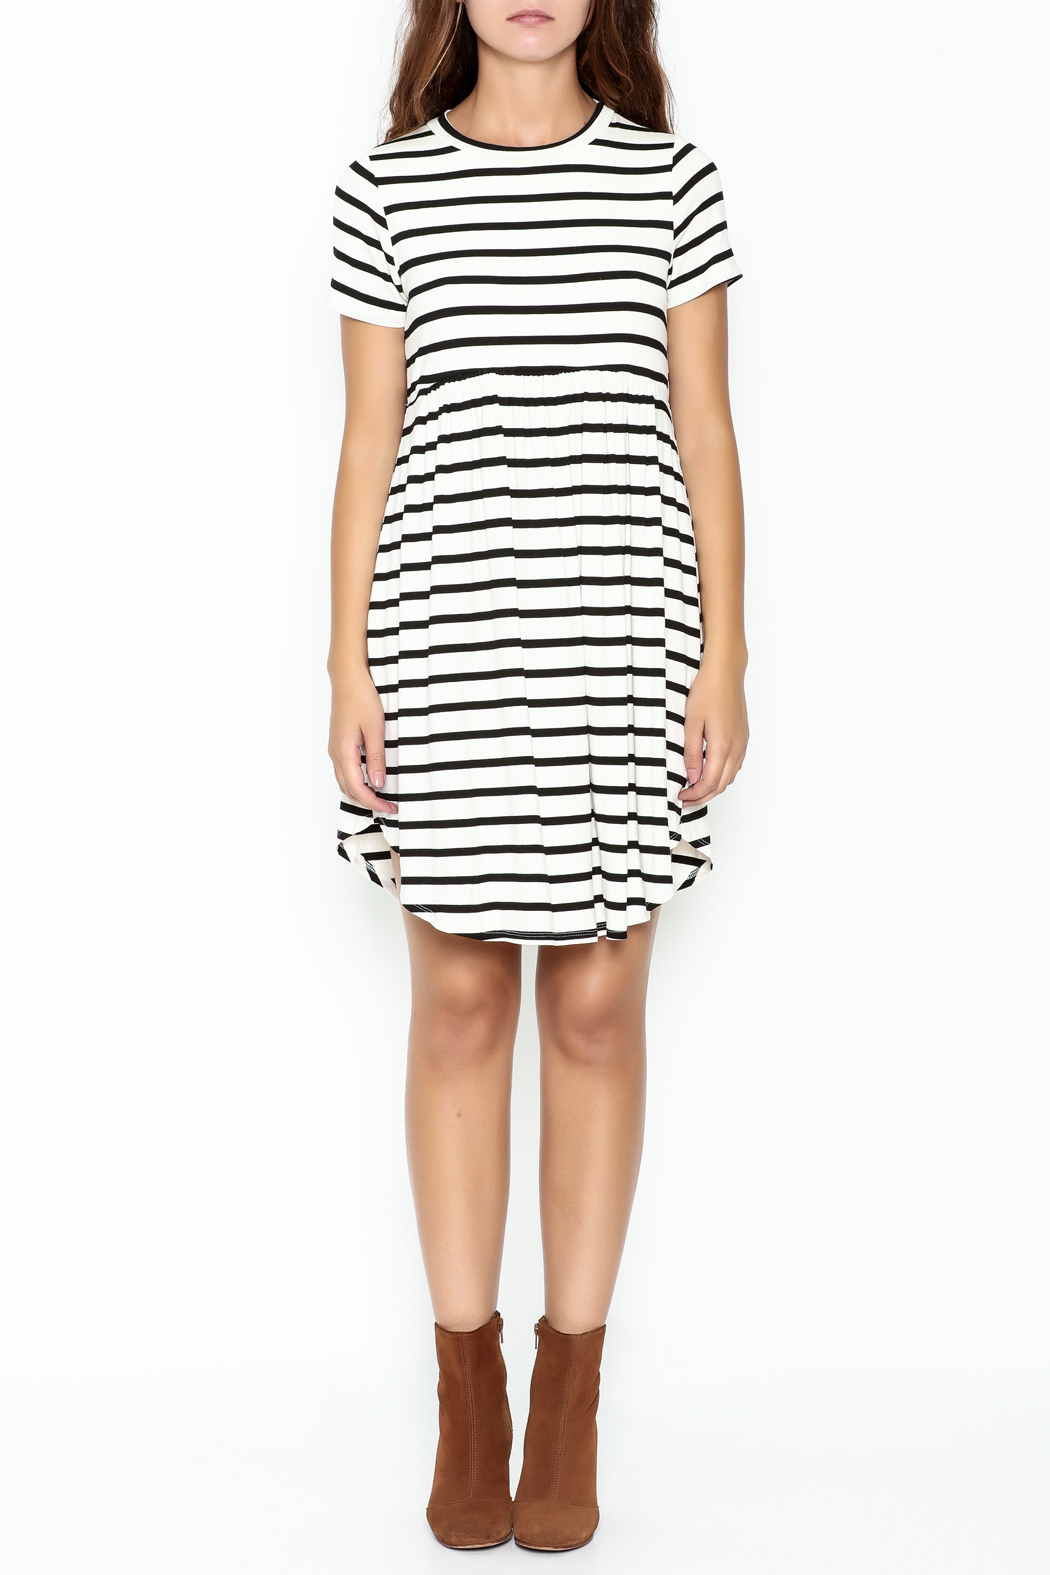 Bellamie Maddie Striped Tunic - Front Full Image